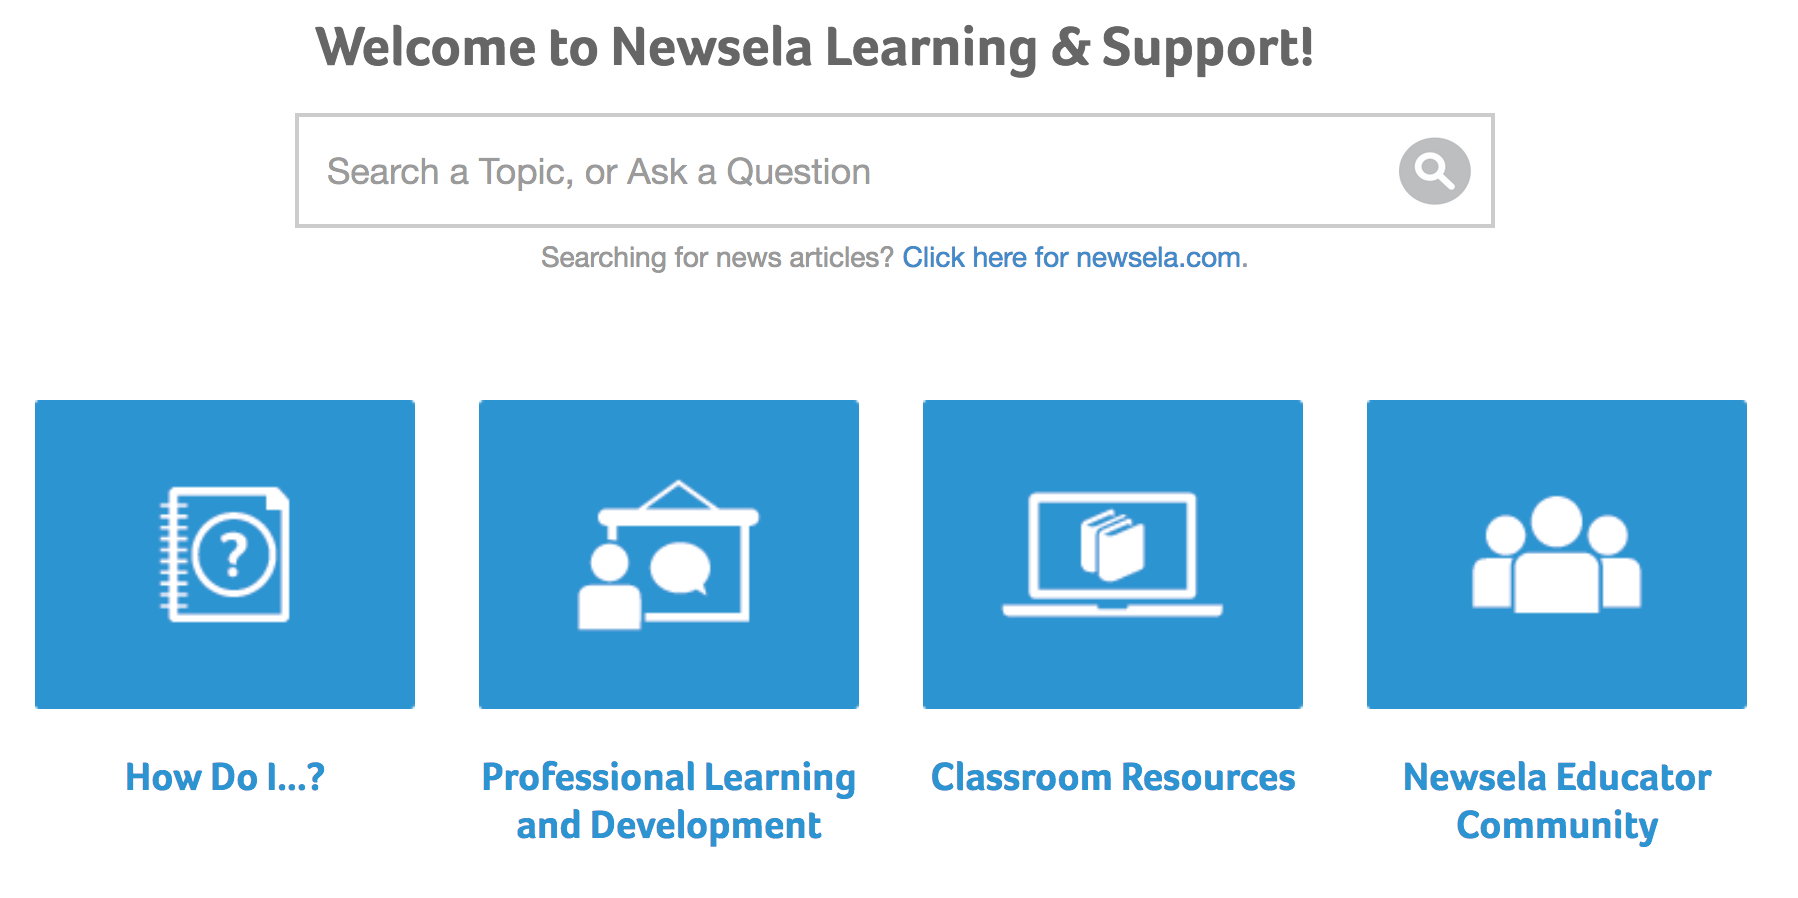 Screen_Shot_Newsela_learning_and_support_banner.png